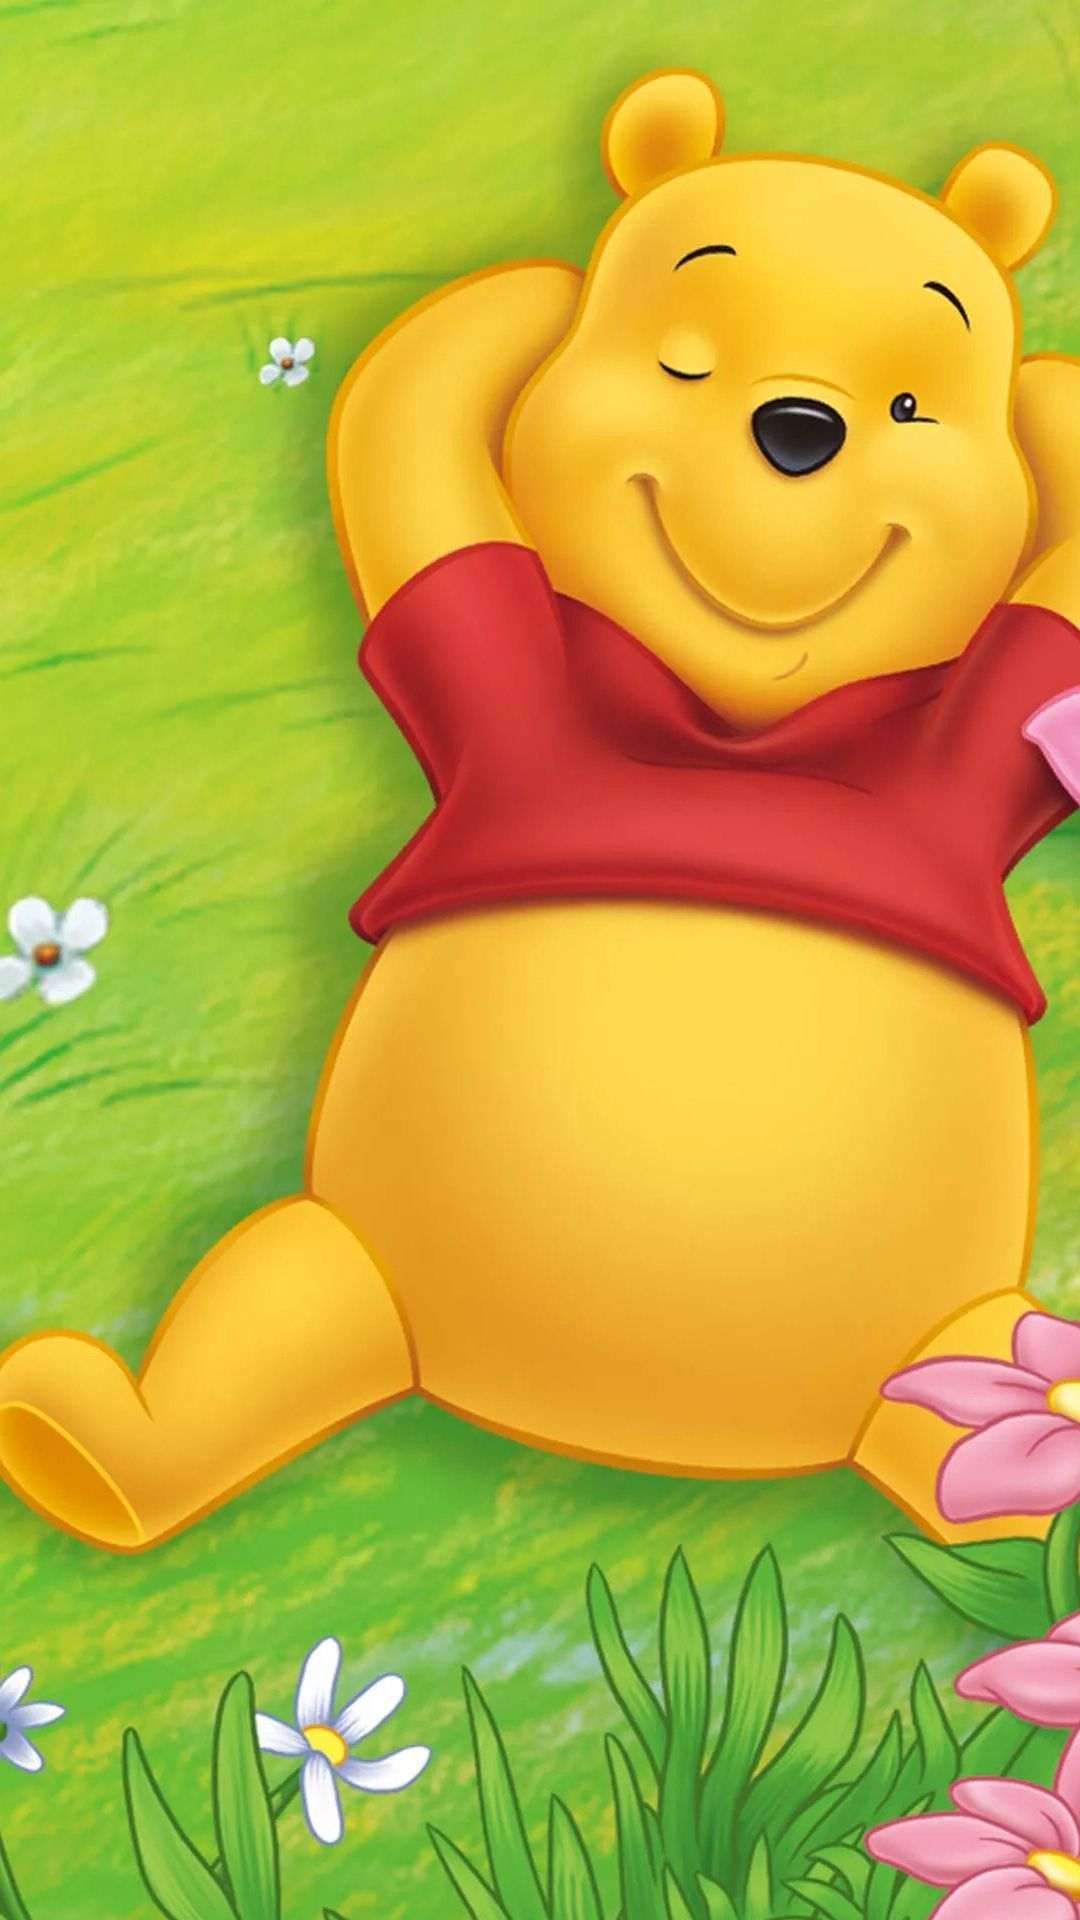 Aesthetic Winnie The Pooh Wallpapers - Wallpaper Cave